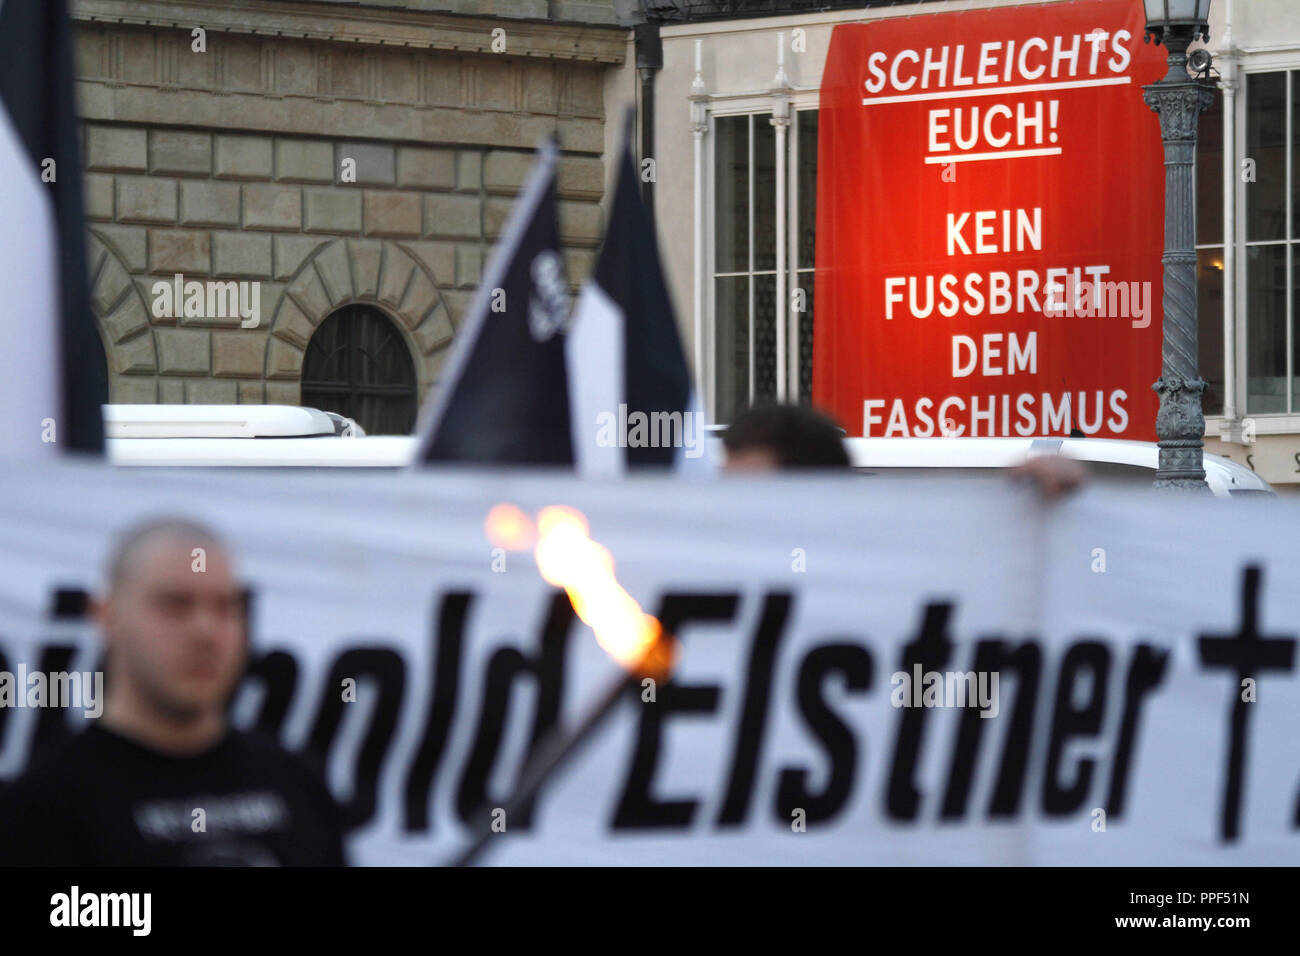 """The State Opera and the Residenz Theater protest against a neo-Nazi march. The right-wing extremists commemorate the anniversary of the death of one of their comrades, Reinhold Elstner, who set himself on fire in 1995 to protest against the Wehrmacht exhibition. Above the entrance of the opera there is a giant red cloth with the words """"Get lost! No inch of fascism"""". Stock Photo"""